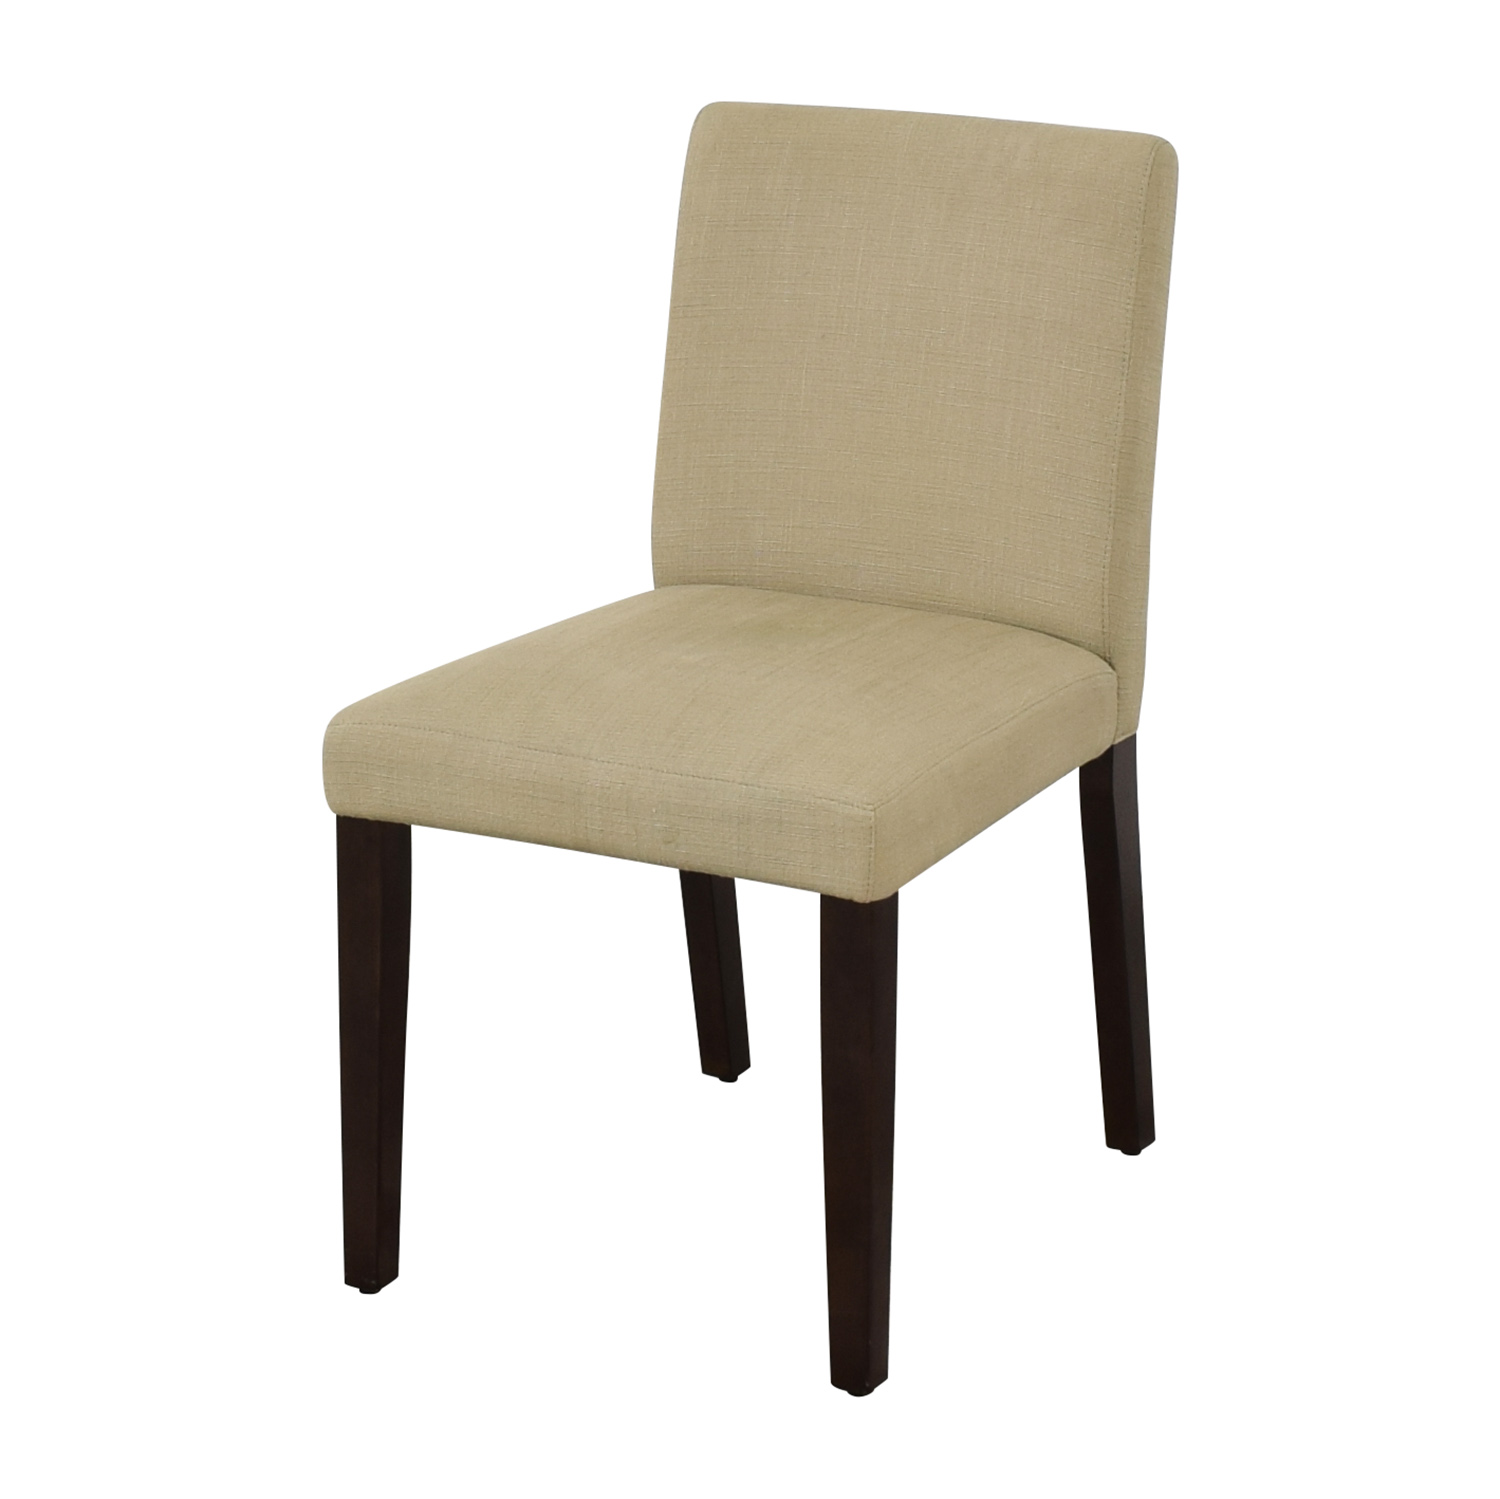 West Elm West Elm Porter Side Chairs price